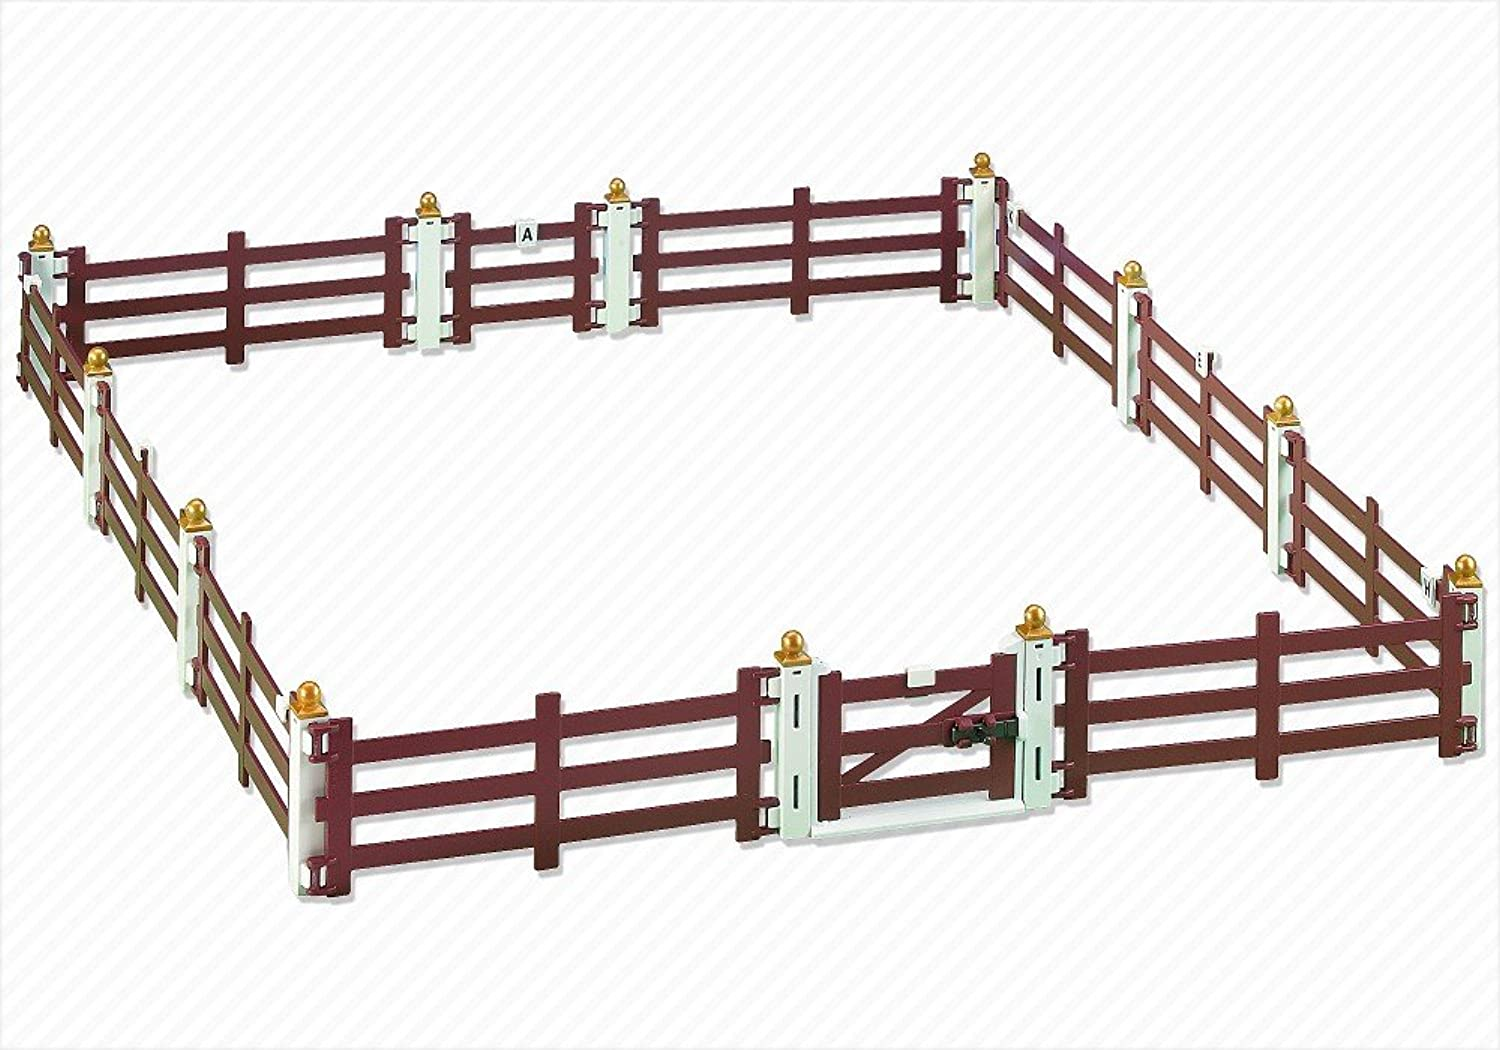 Fence Extension for Horse Farm with Paddock (5221)